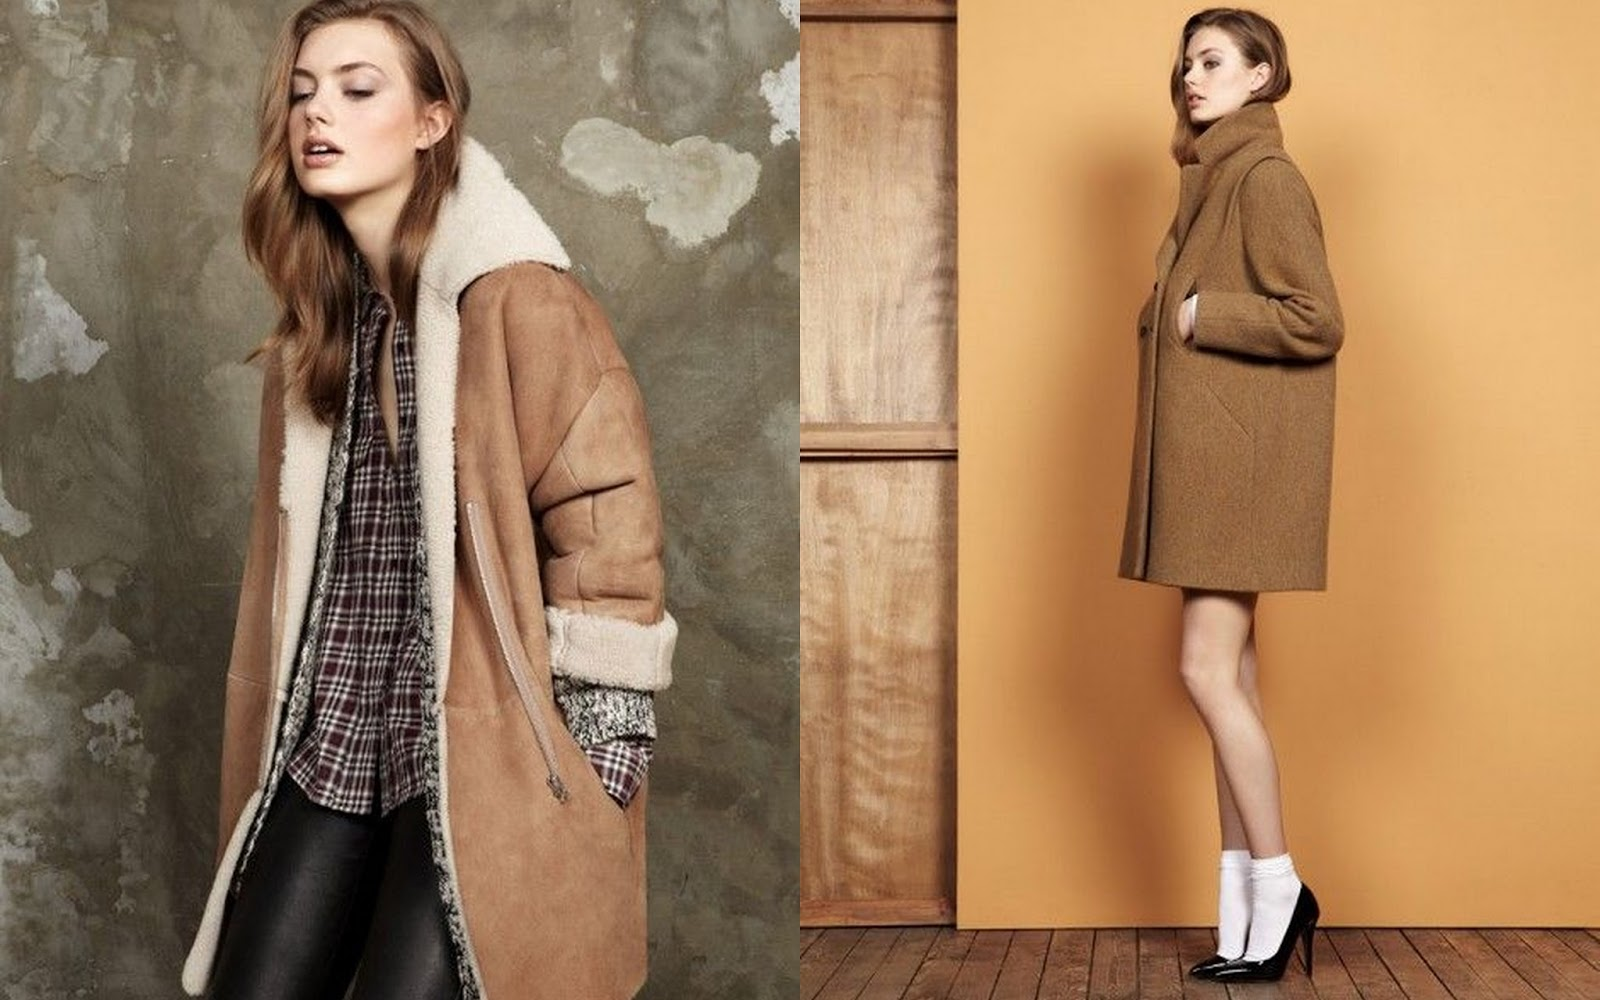 Sheepskin coat, Shearling coat, palid shirt, Pablo, Pablo Gerard Darel, camel coat and shoes, pointy shoes, heel s and socks